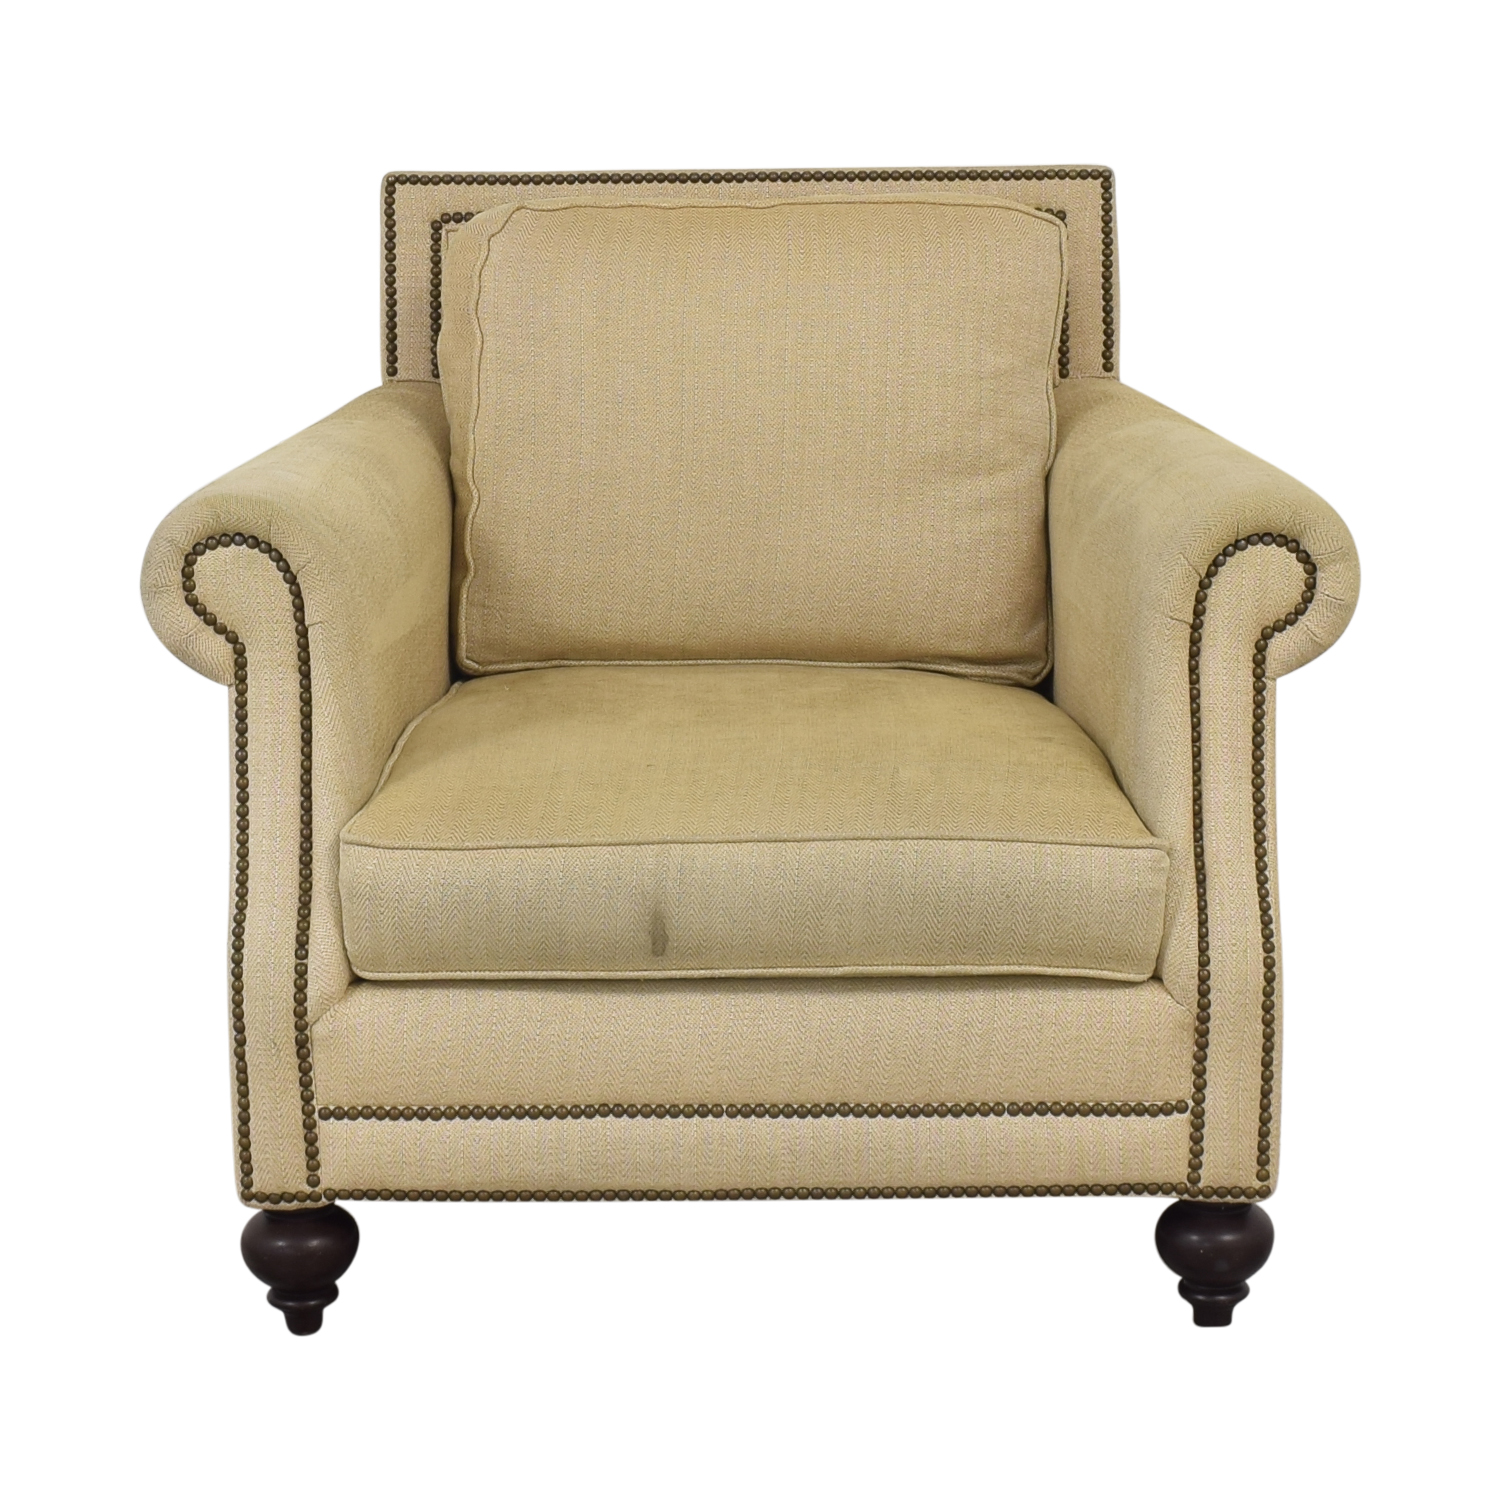 buy Bernhardt Brae Chair Bernhardt